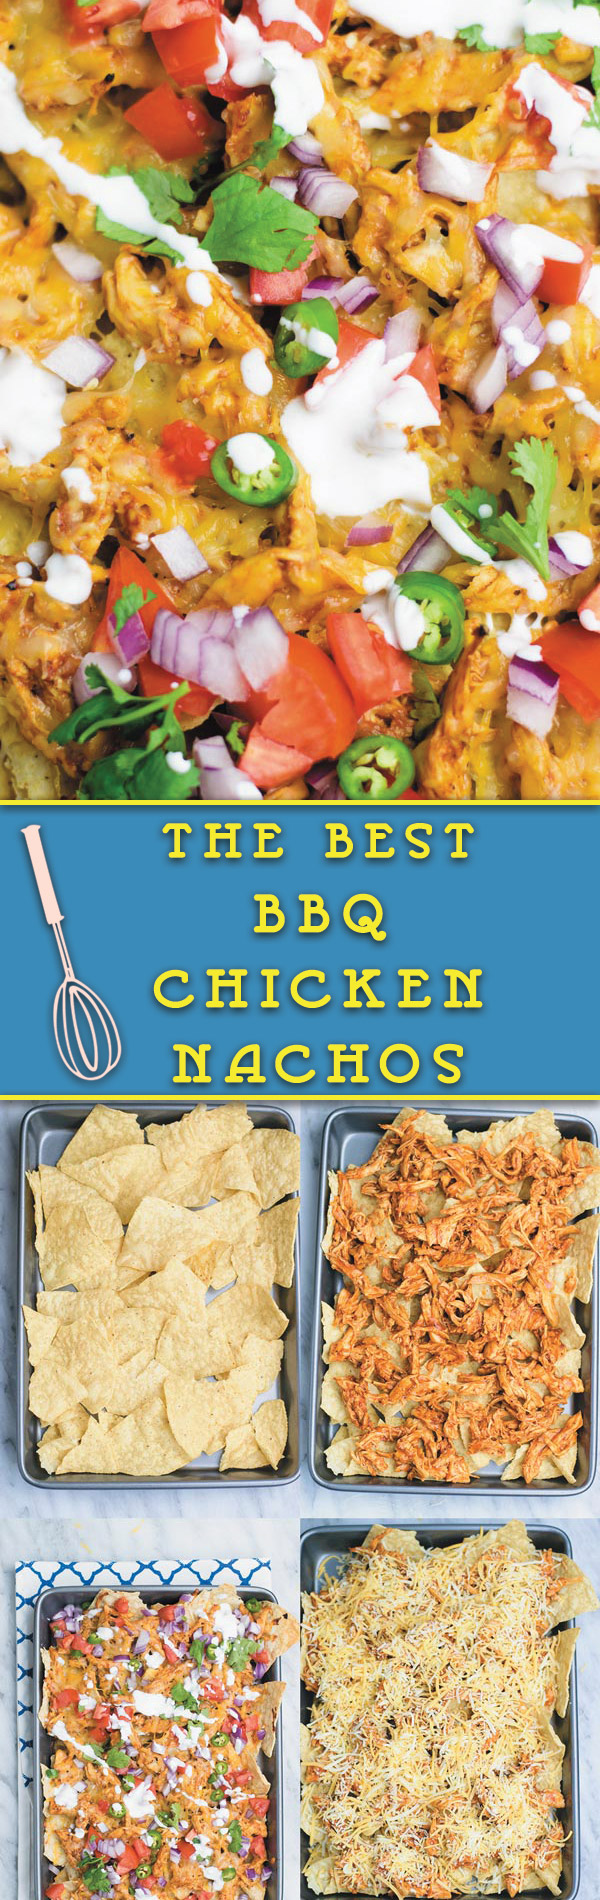 The Best BBQ Chicken Nachos - no need to go to restaurant and pay when you make restaurant quality BBQ chicken nachos at home with fraction of the cost!! And with all the fixins! These are always very Popular at my place.